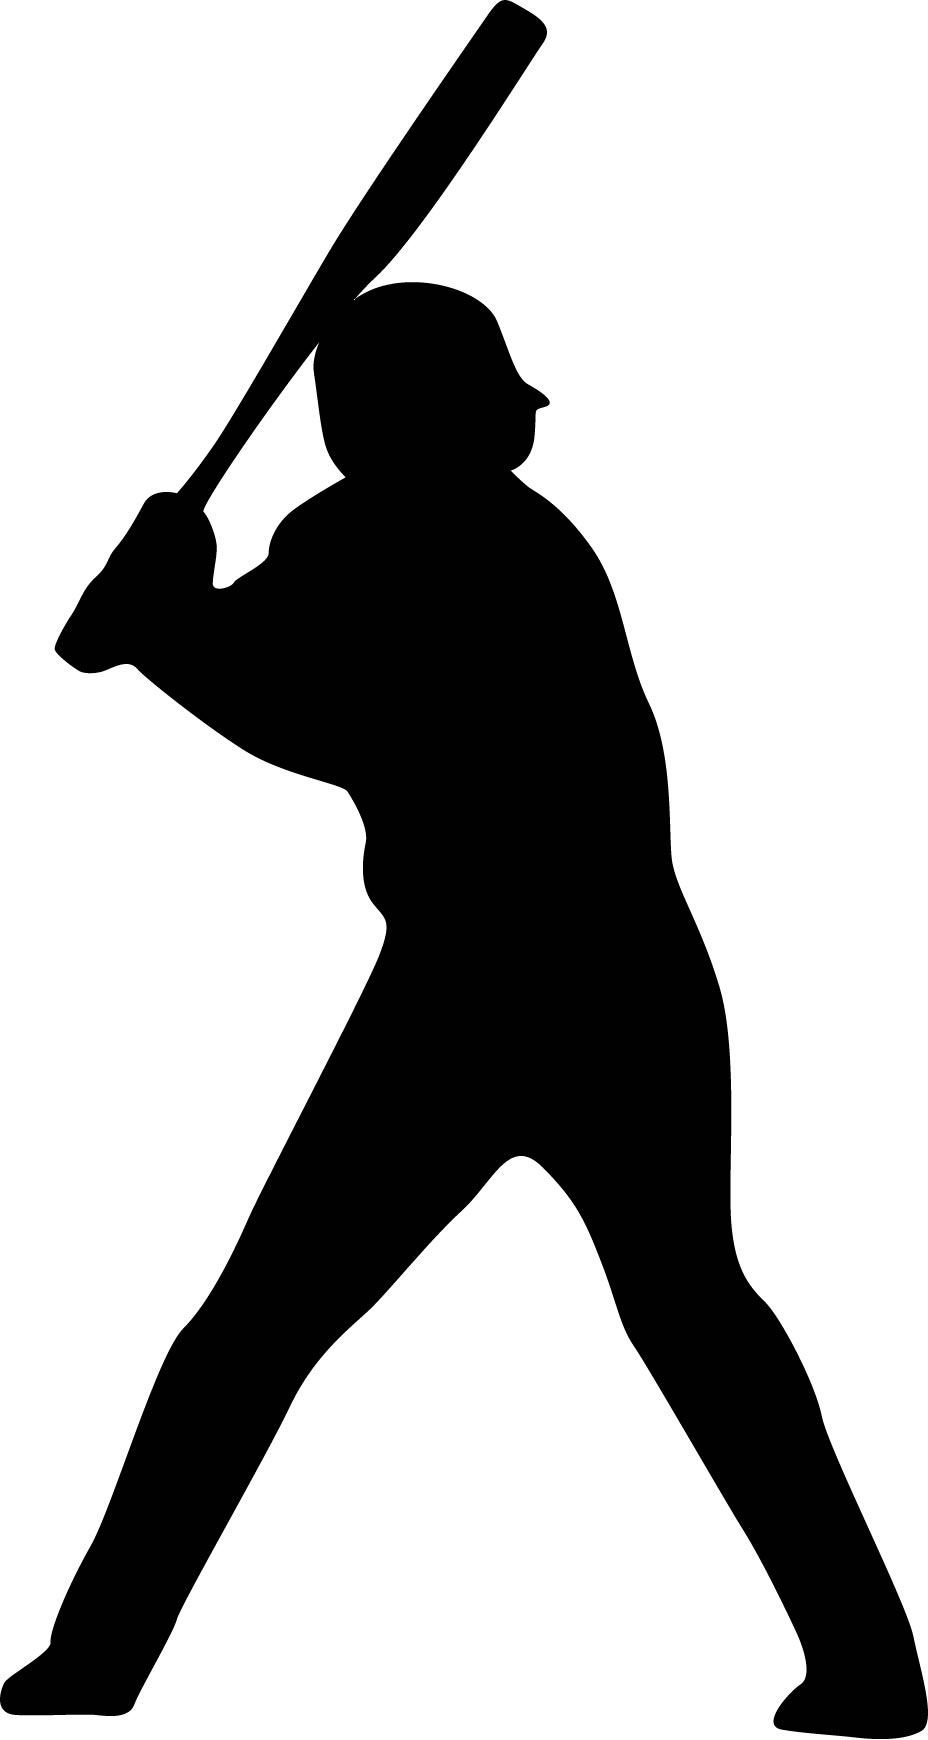 Baseball Player Batting Stance Righty Silhouette Custom Wall Decals Wall Decal Art And Wall Decal Murals Silhouette Silhouette Clip Art Baseball Wall Decal